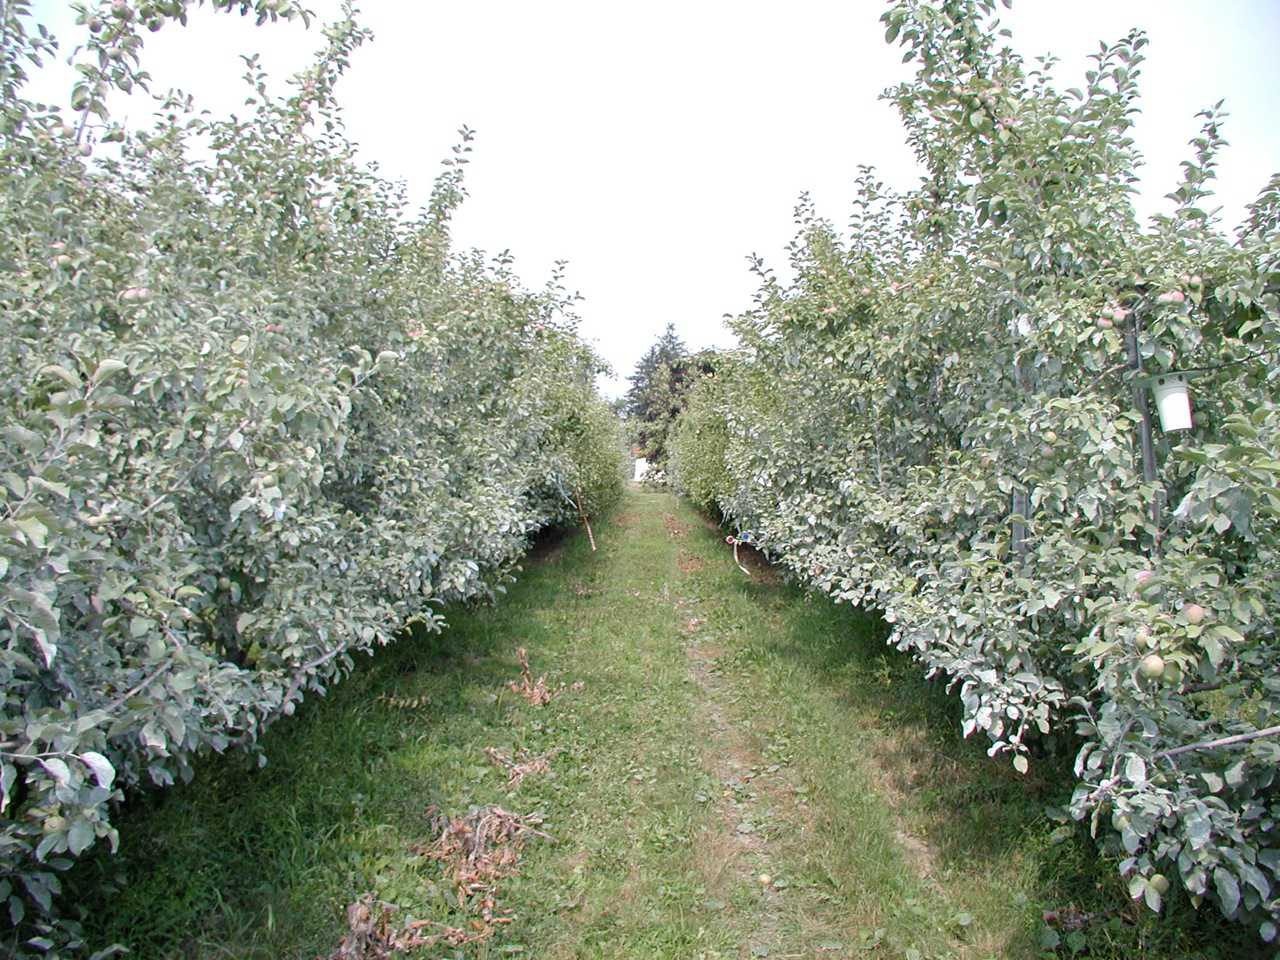 Growing The Eastern Organic Apple Is Possible - Growing Produce